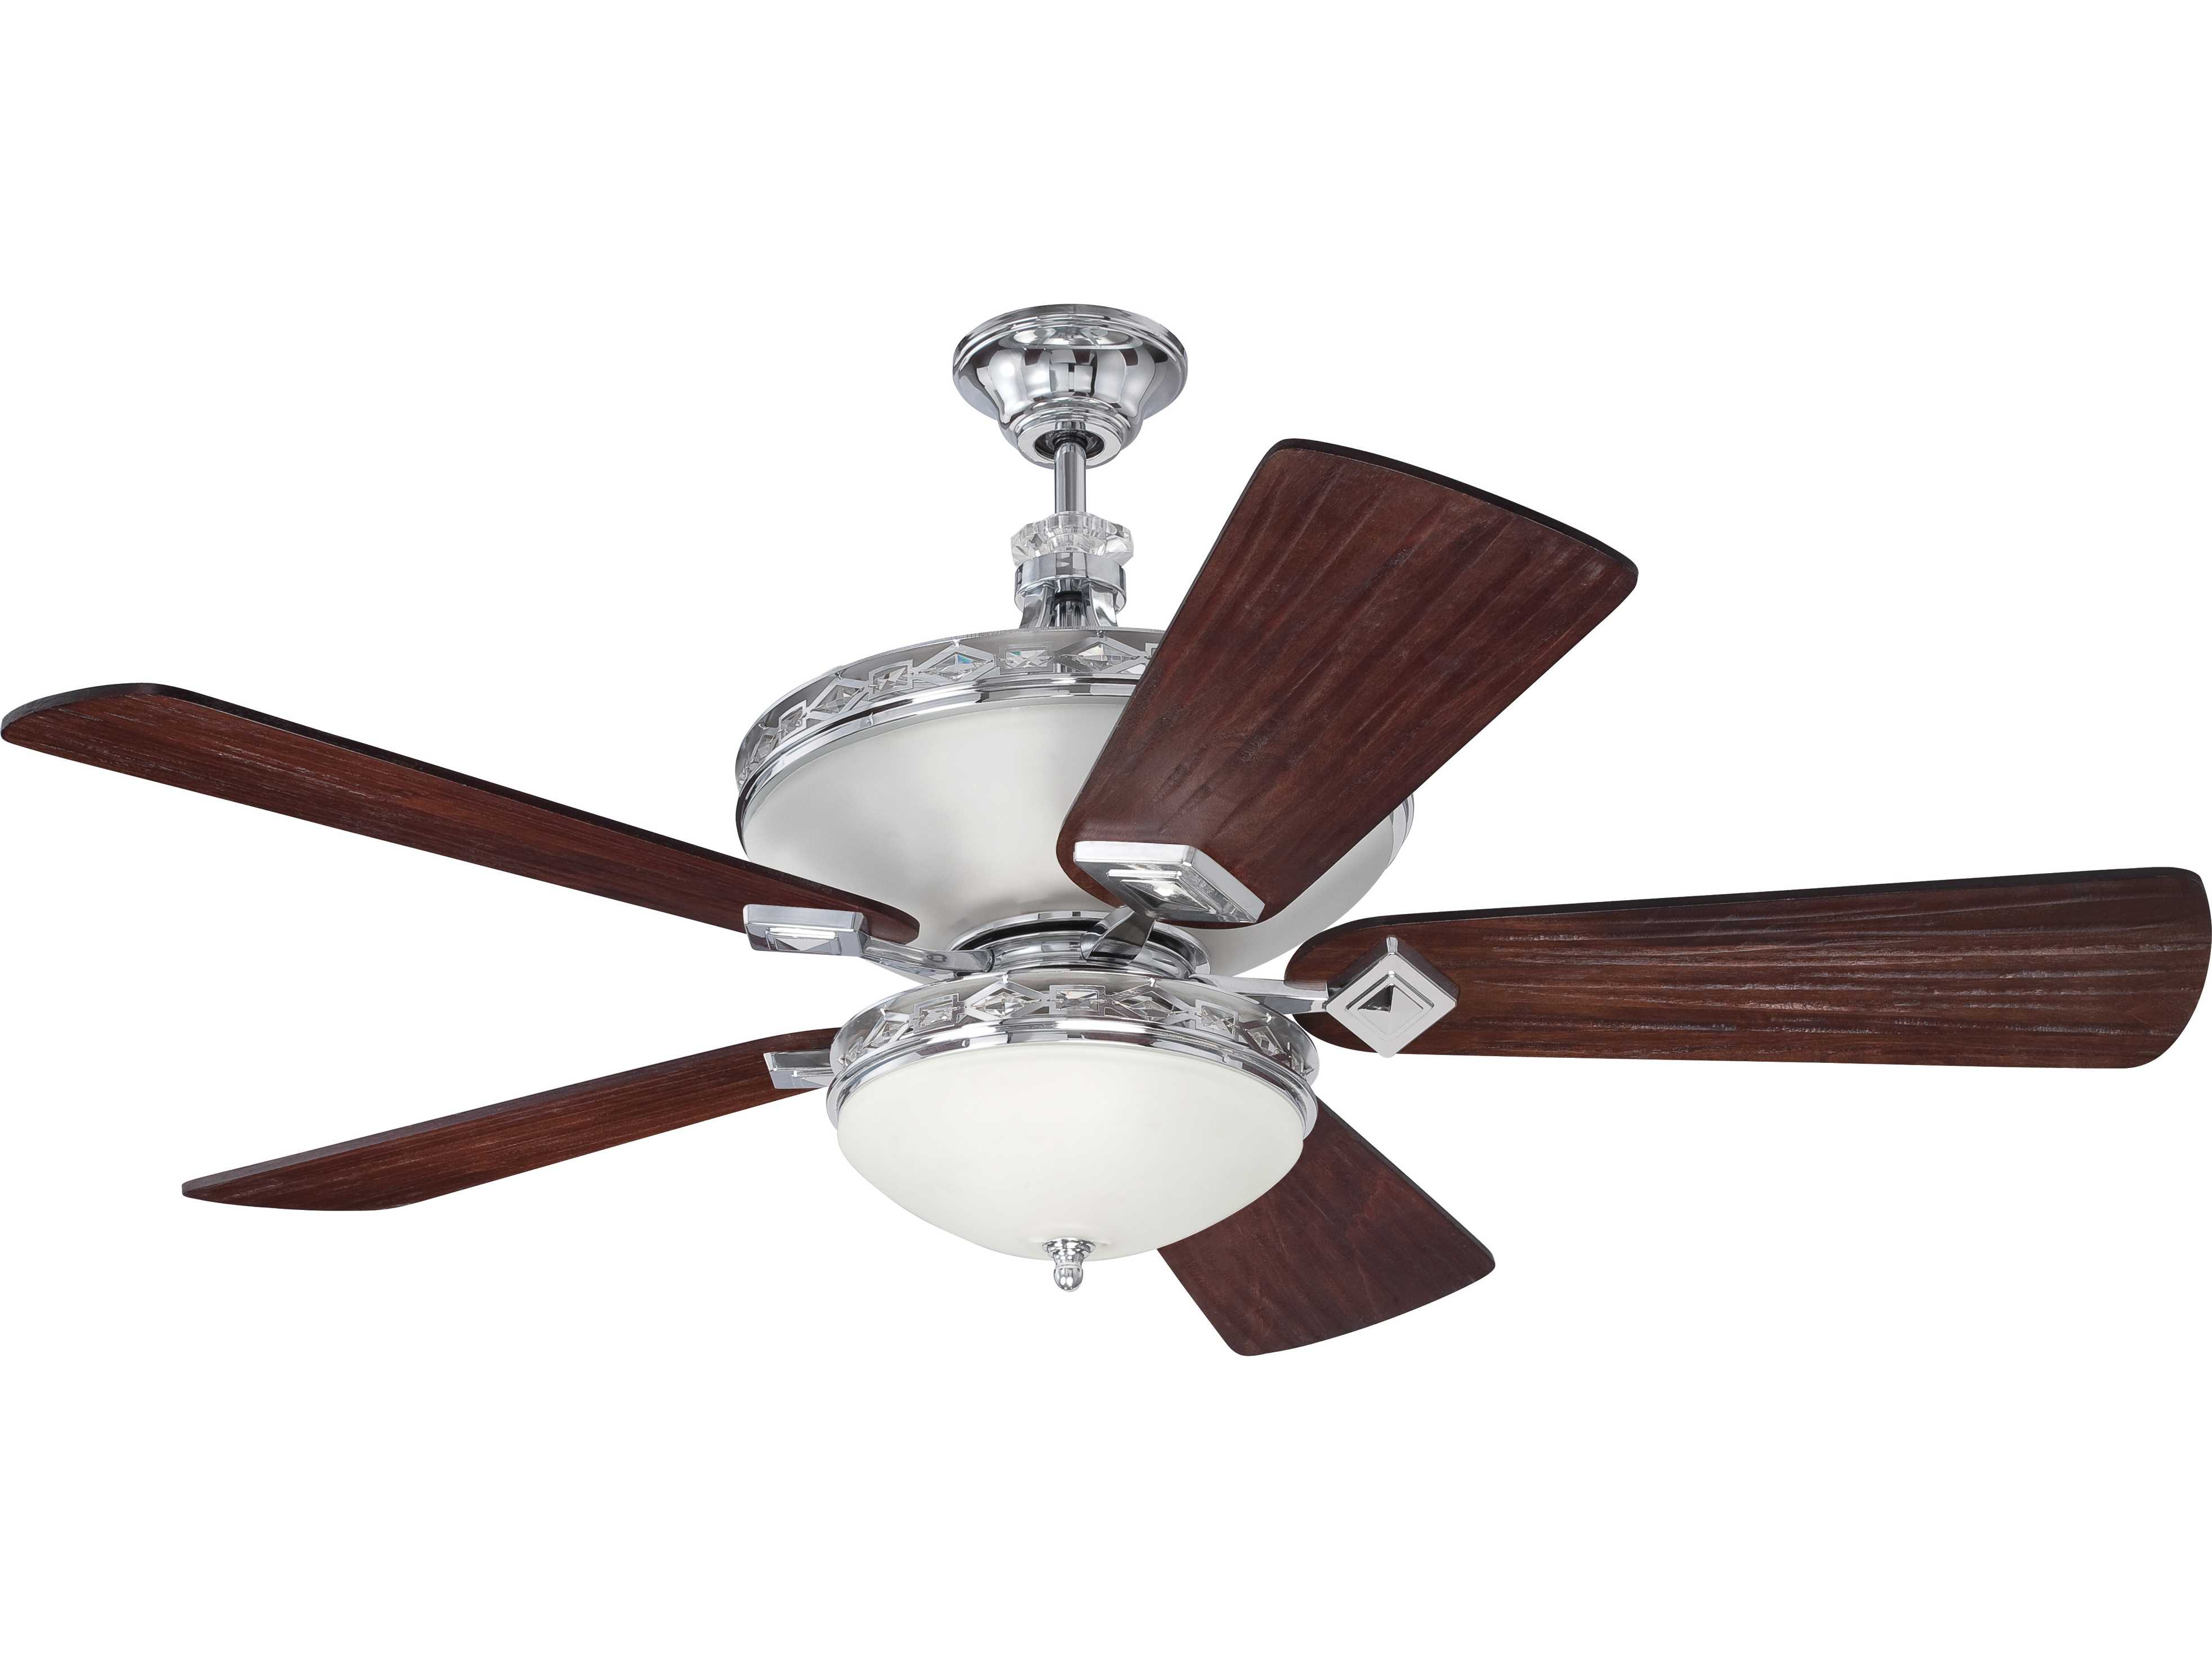 Craftmade Saratoga Chrome 52 Blade Indoor Ceiling Fan with Six